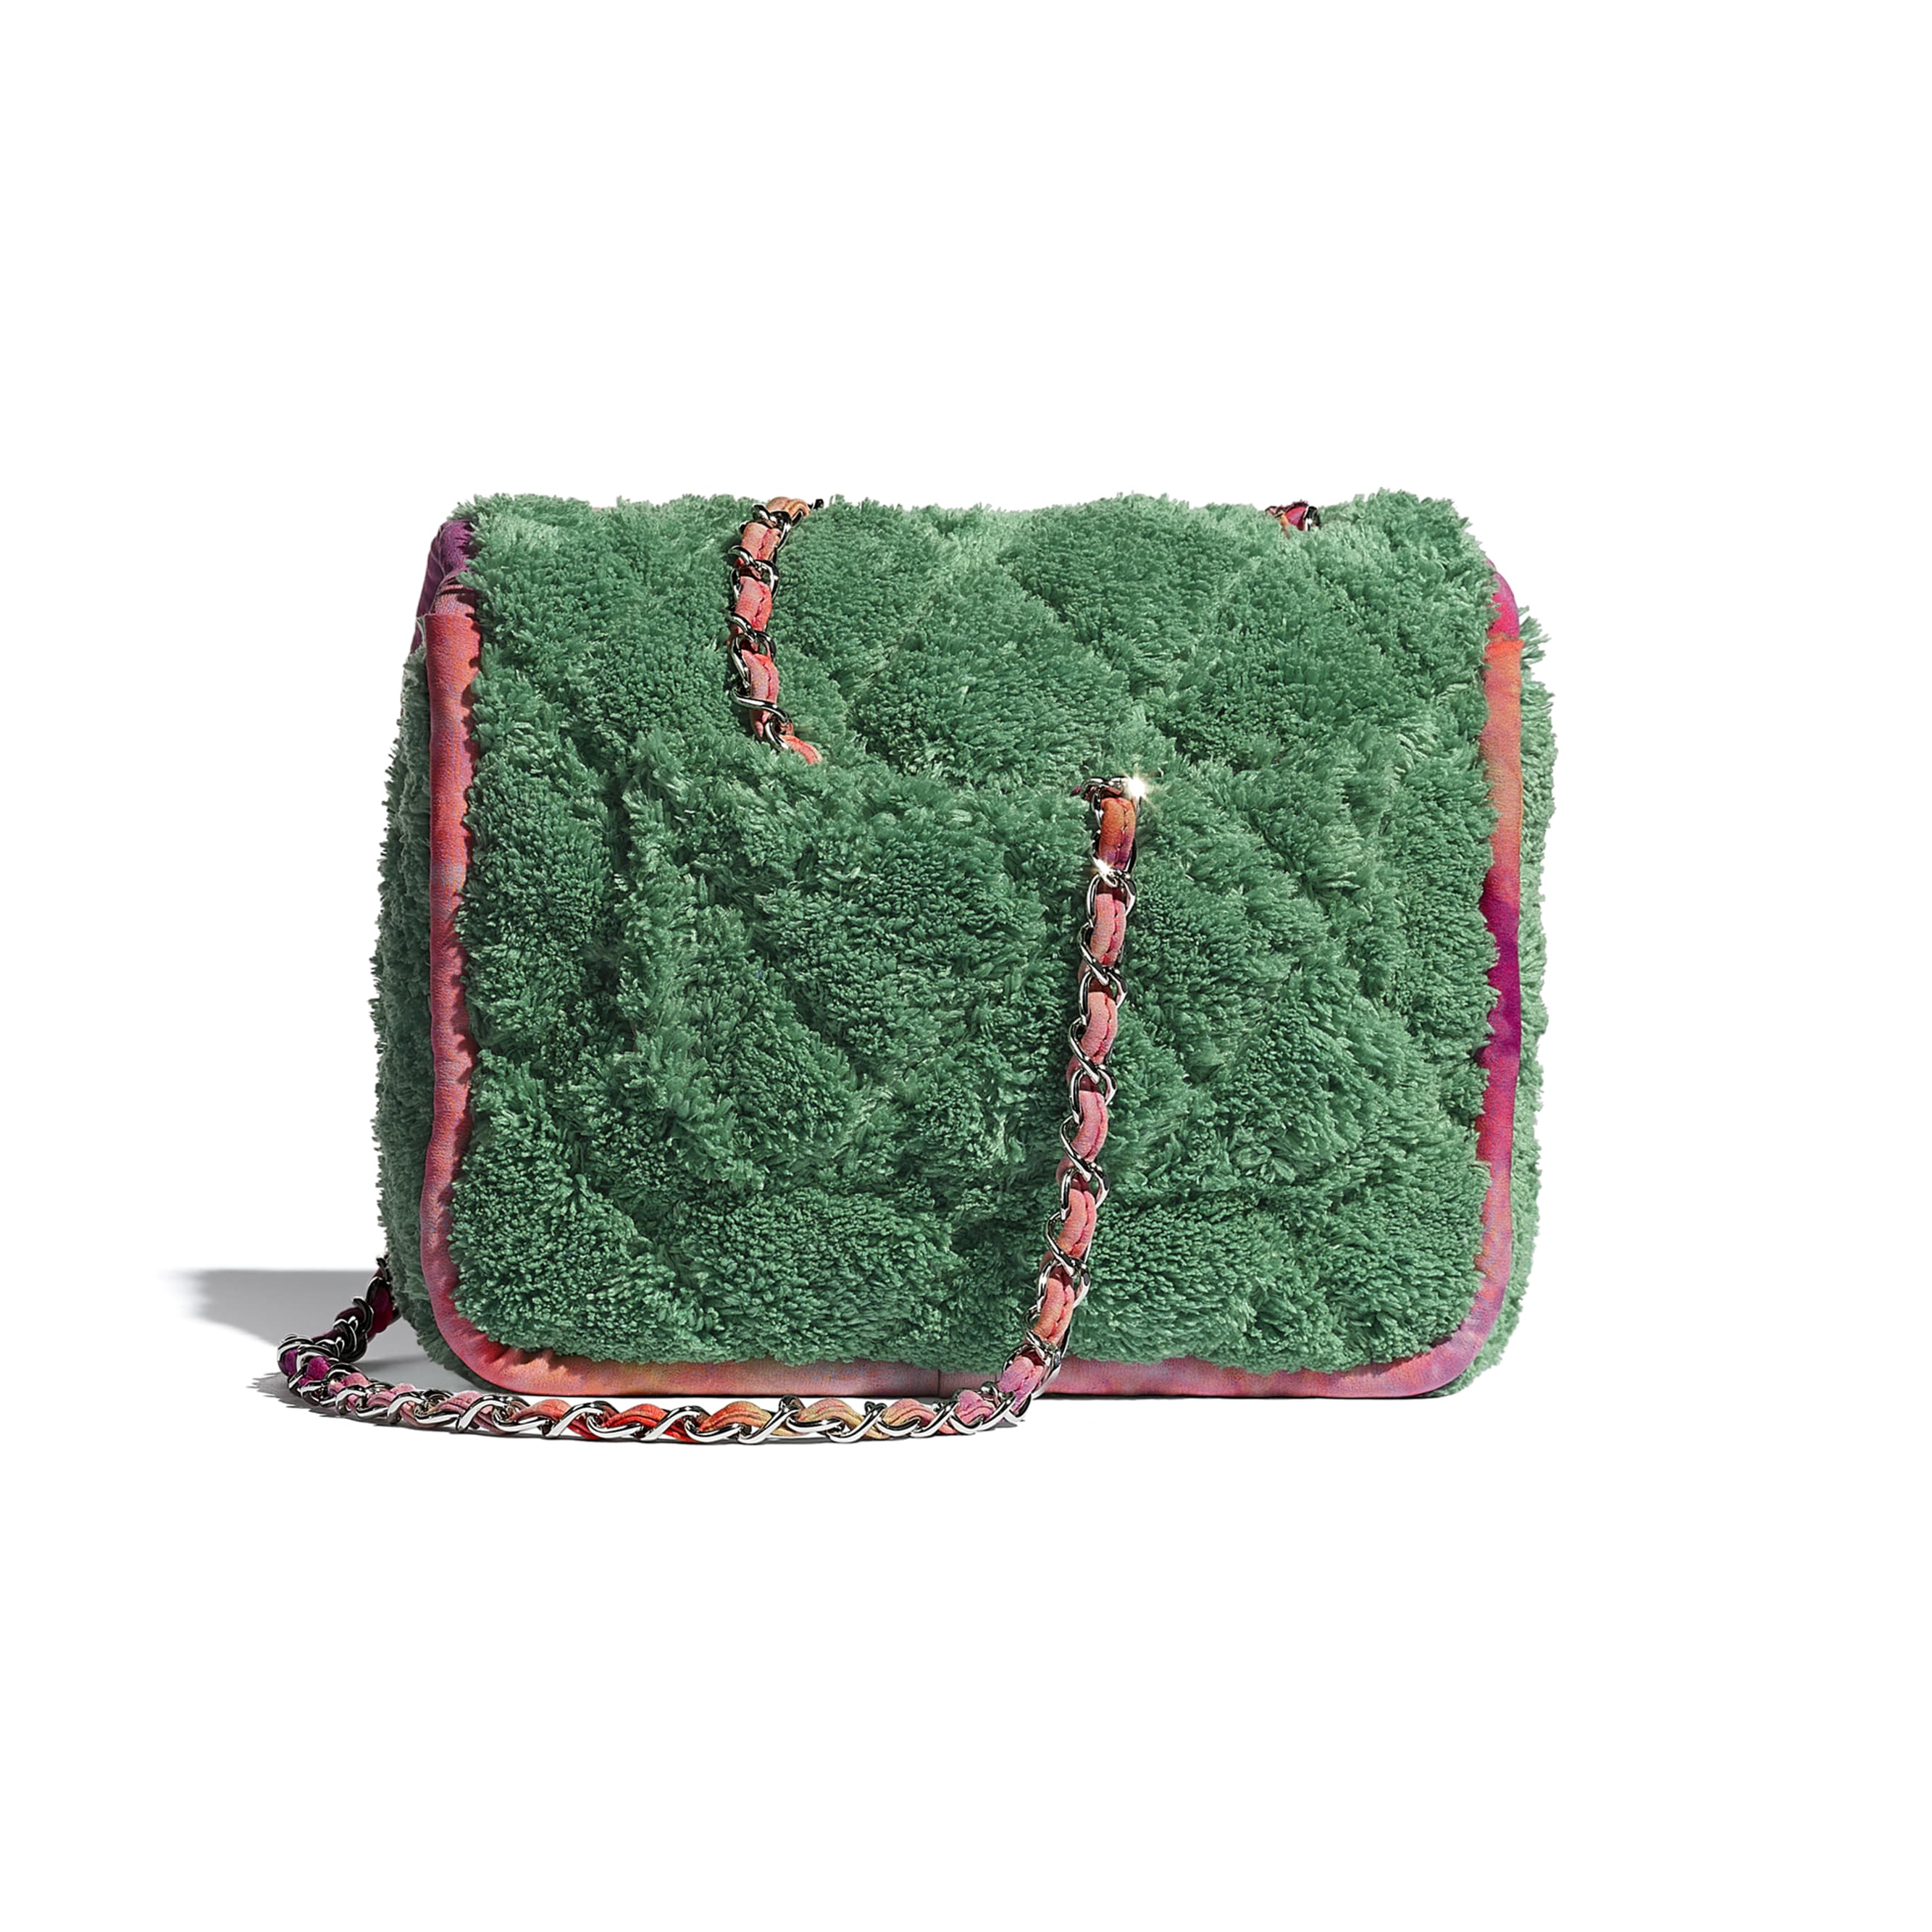 Flap Bag - Green - Mixed Fibers & Silver-Tone Metal - CHANEL - Alternative view - see standard sized version